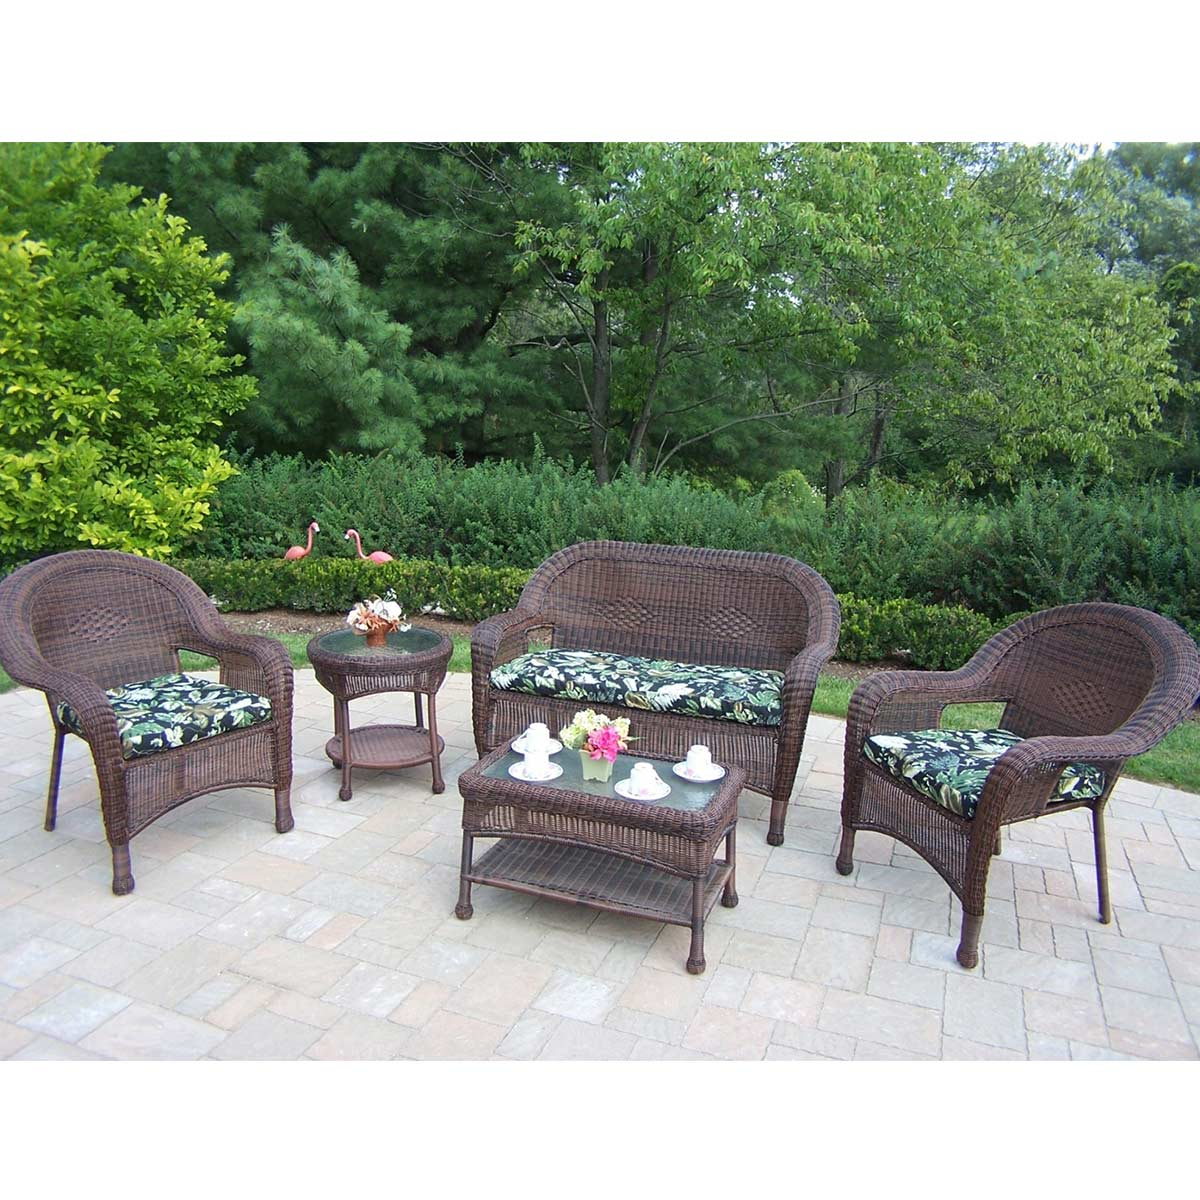 resin table and chairs set pilates on chair exercises oakland living wicker 5 piece outdoor seating